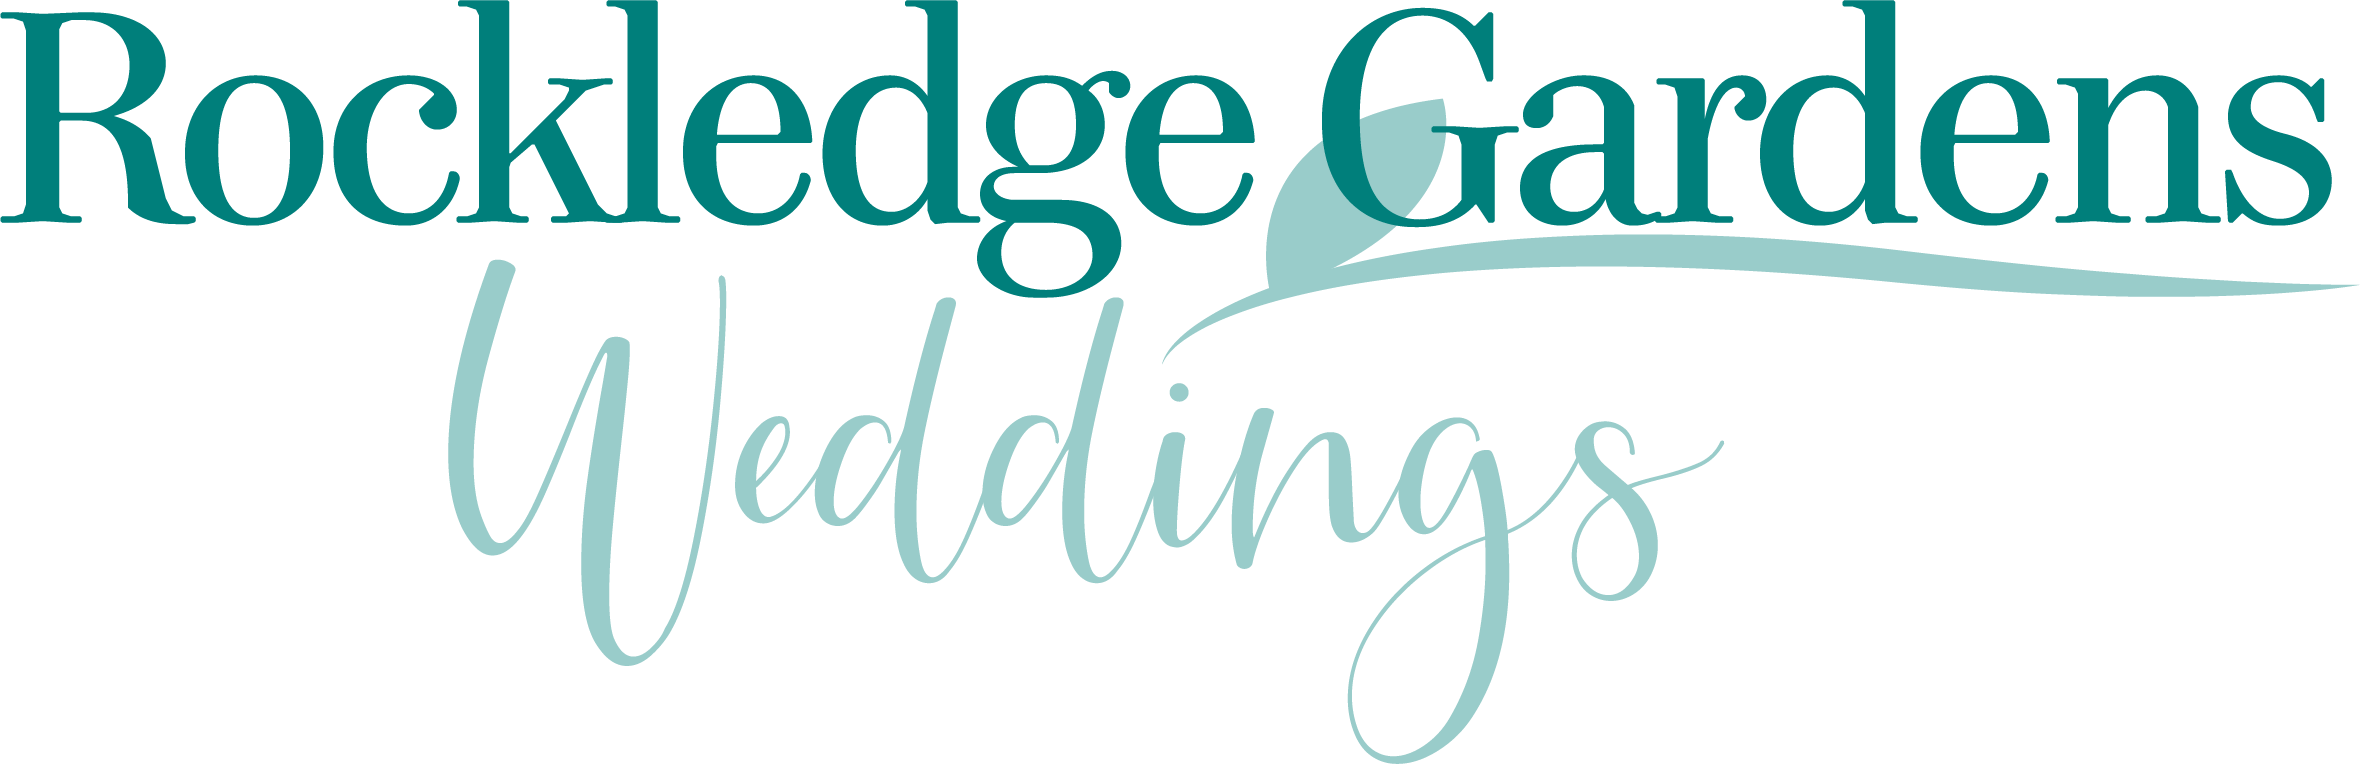 Rockledge Gardens Weddings